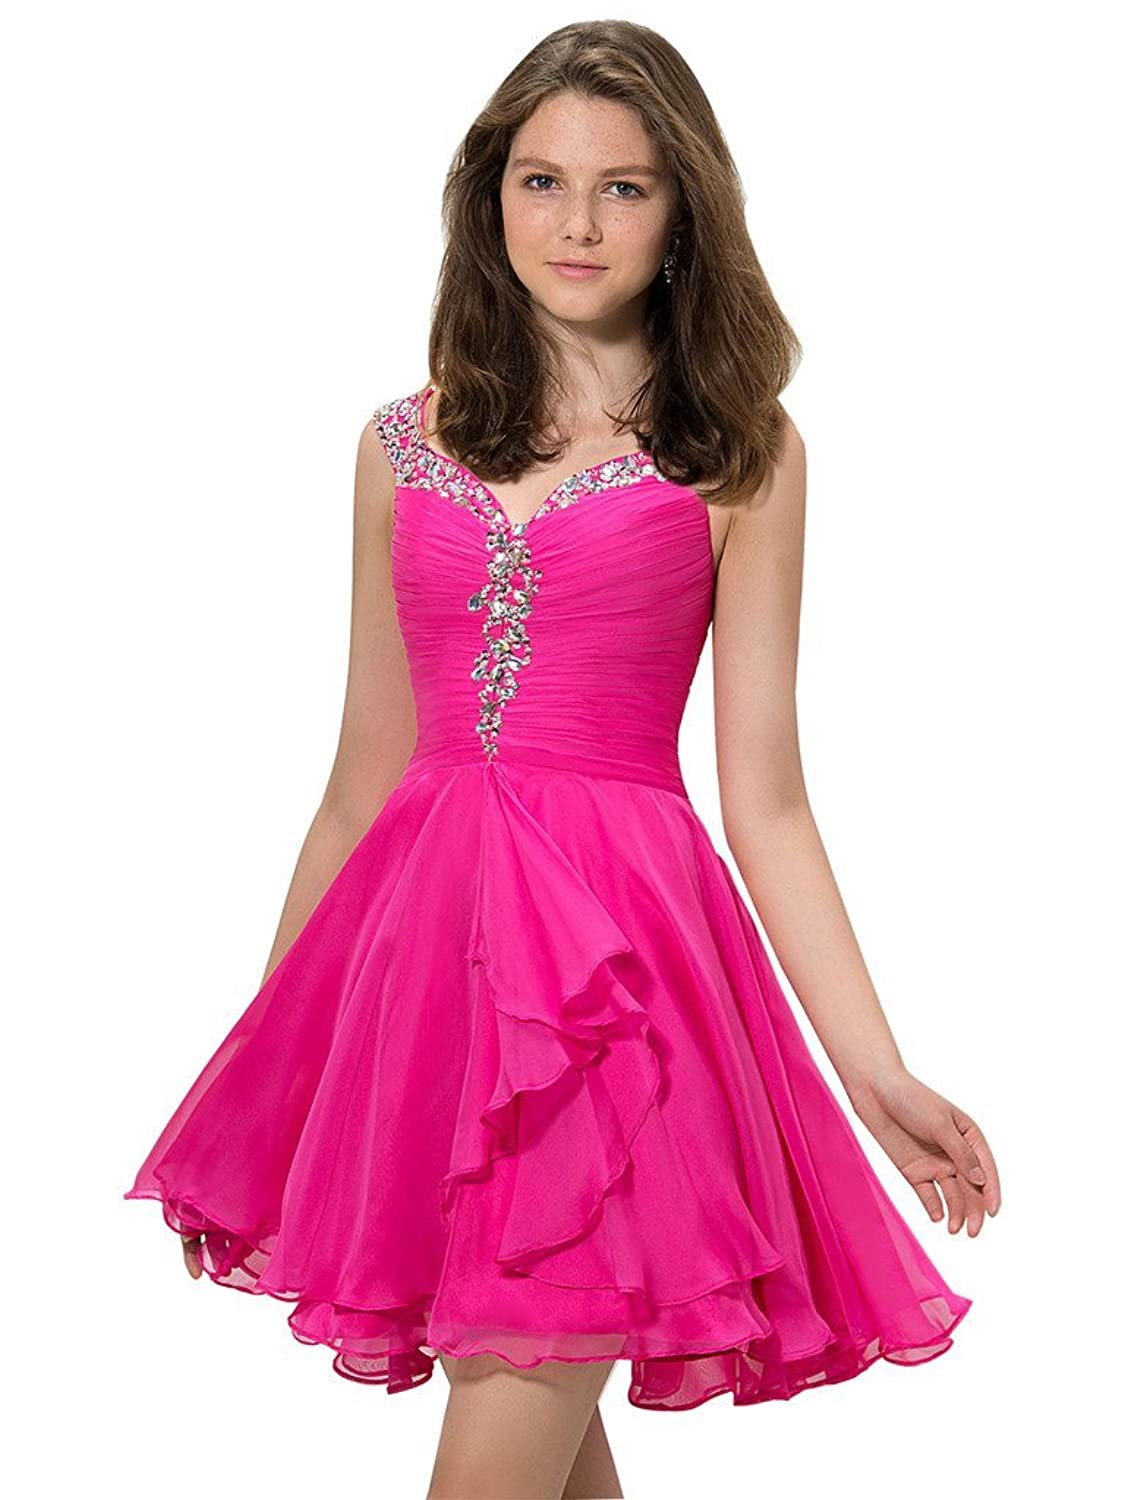 CLOCOLOR Short Mini A-line Ruched Chiffon Beaded Straps Cocktail Dress for Girls Teenagers Homecoming Graduation Gowns